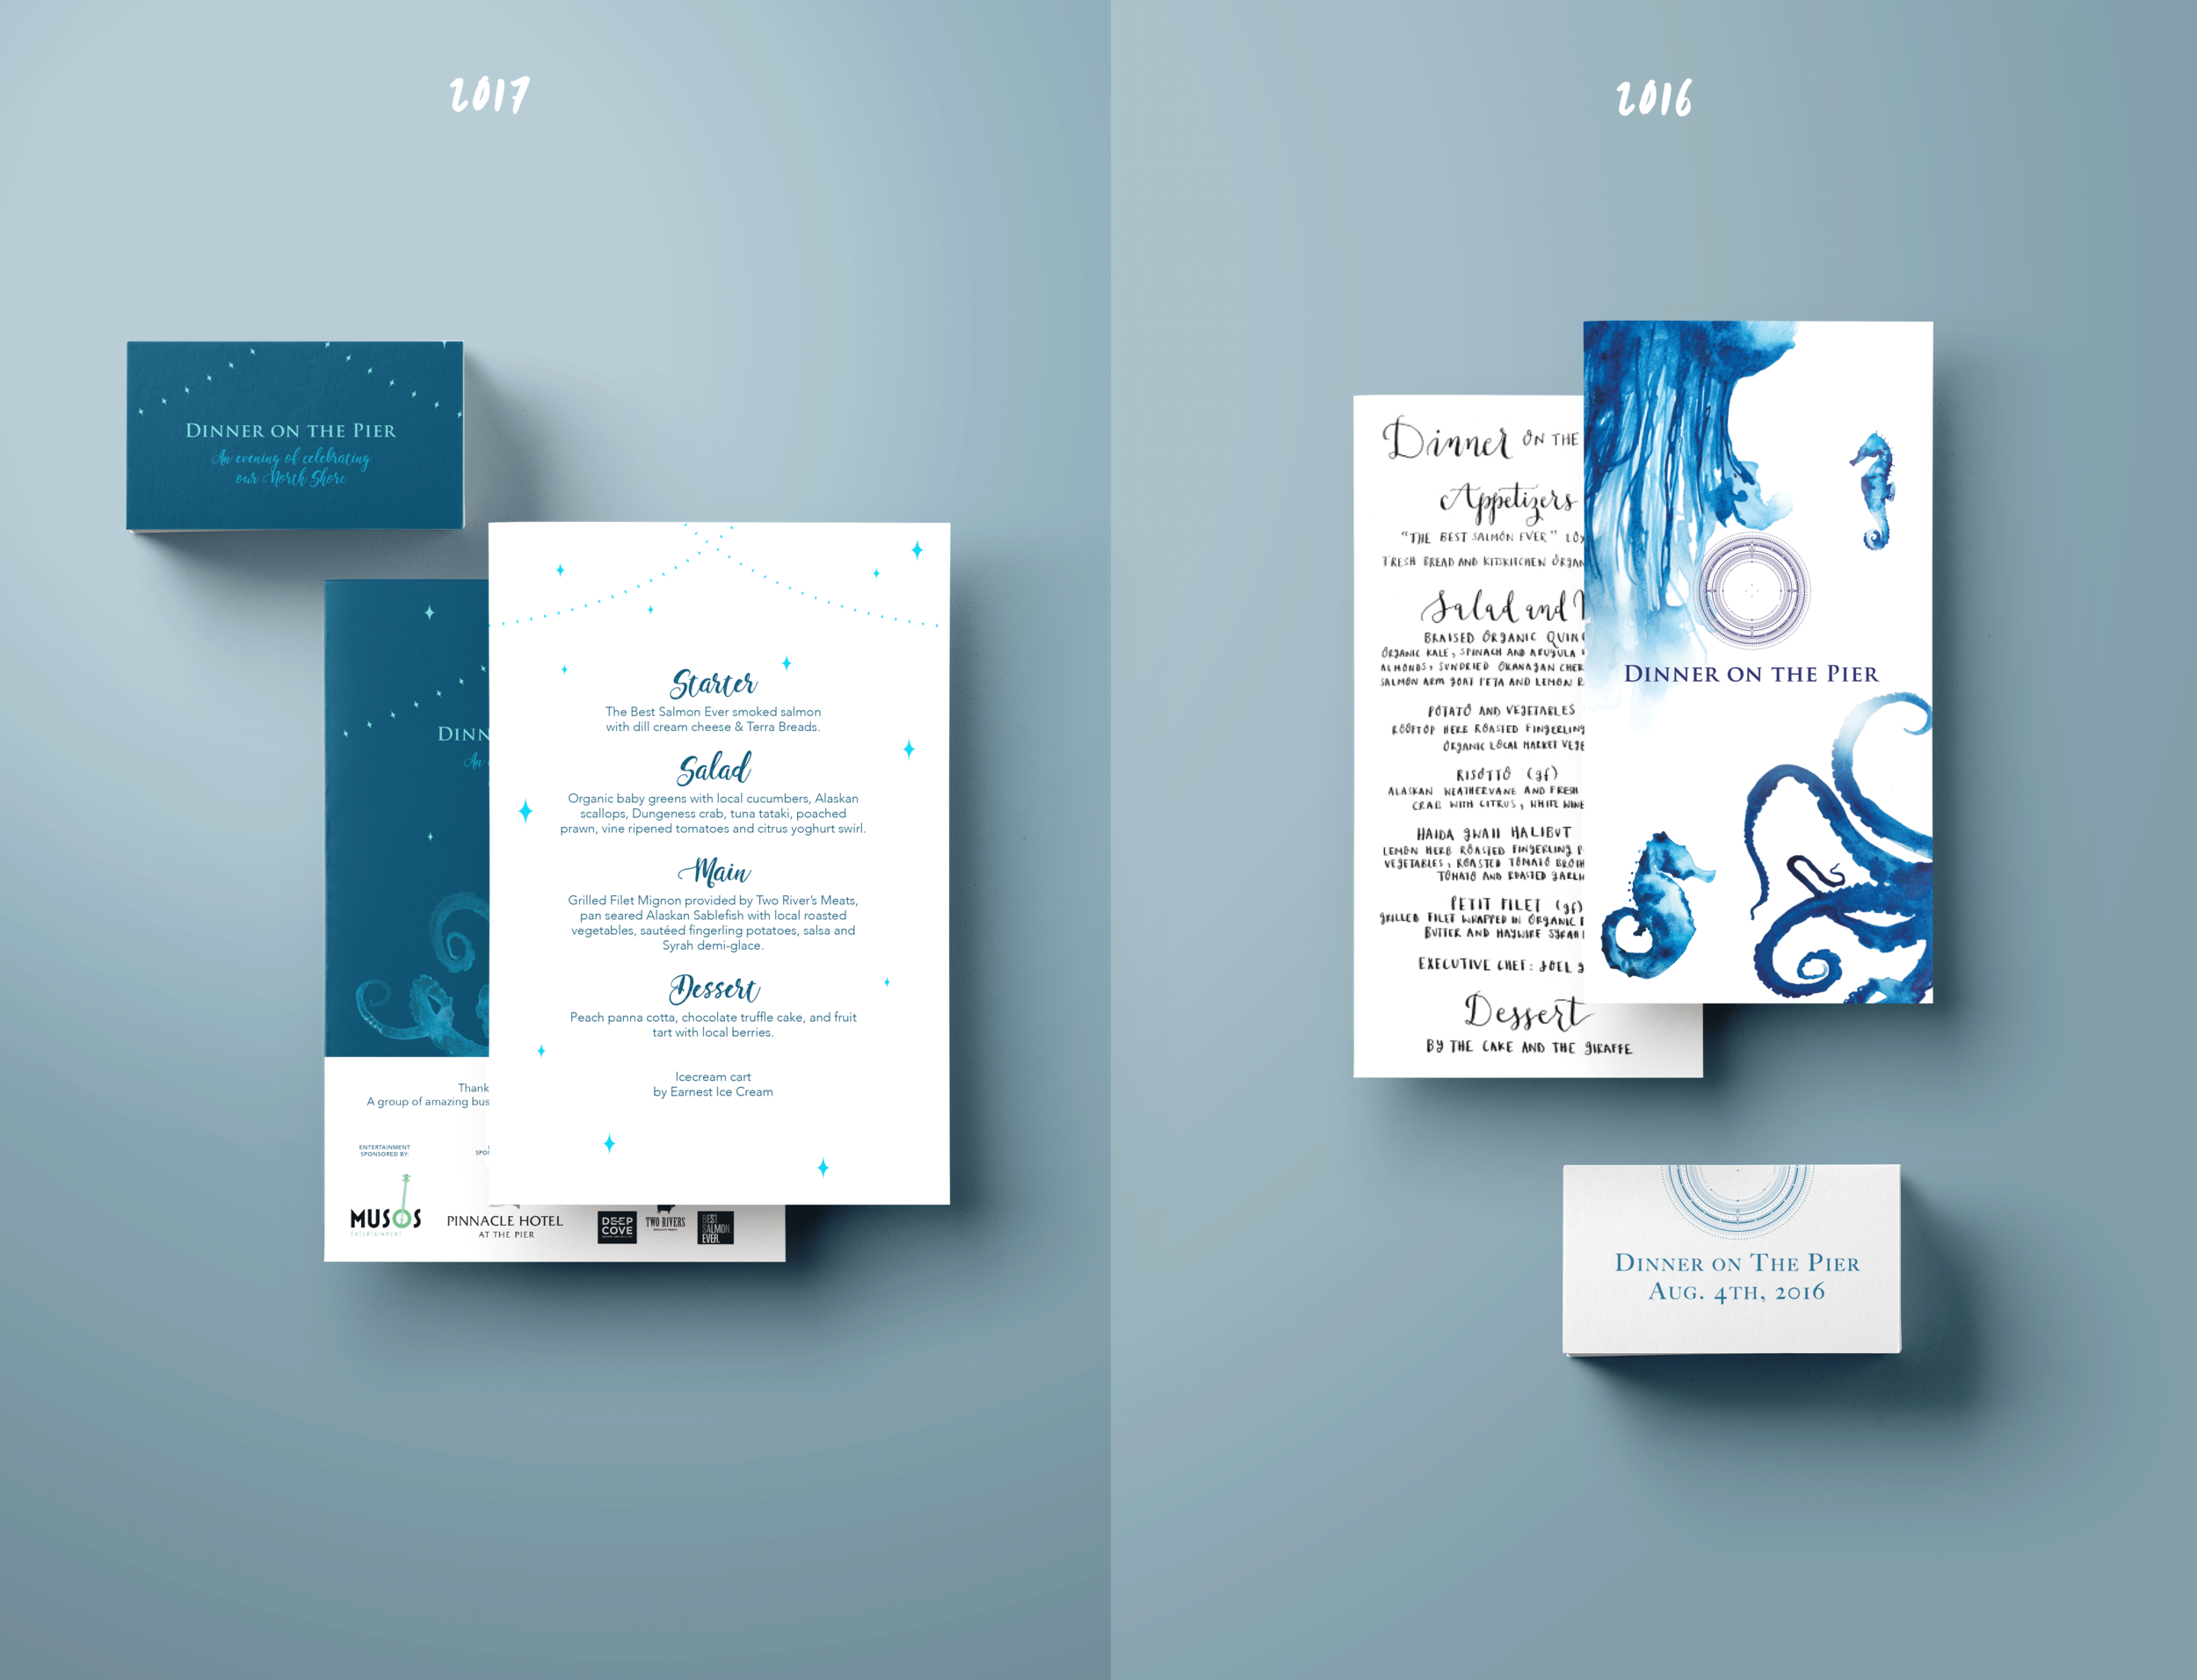 Menu and logo design, on the left 2017's and on the right 2016's)